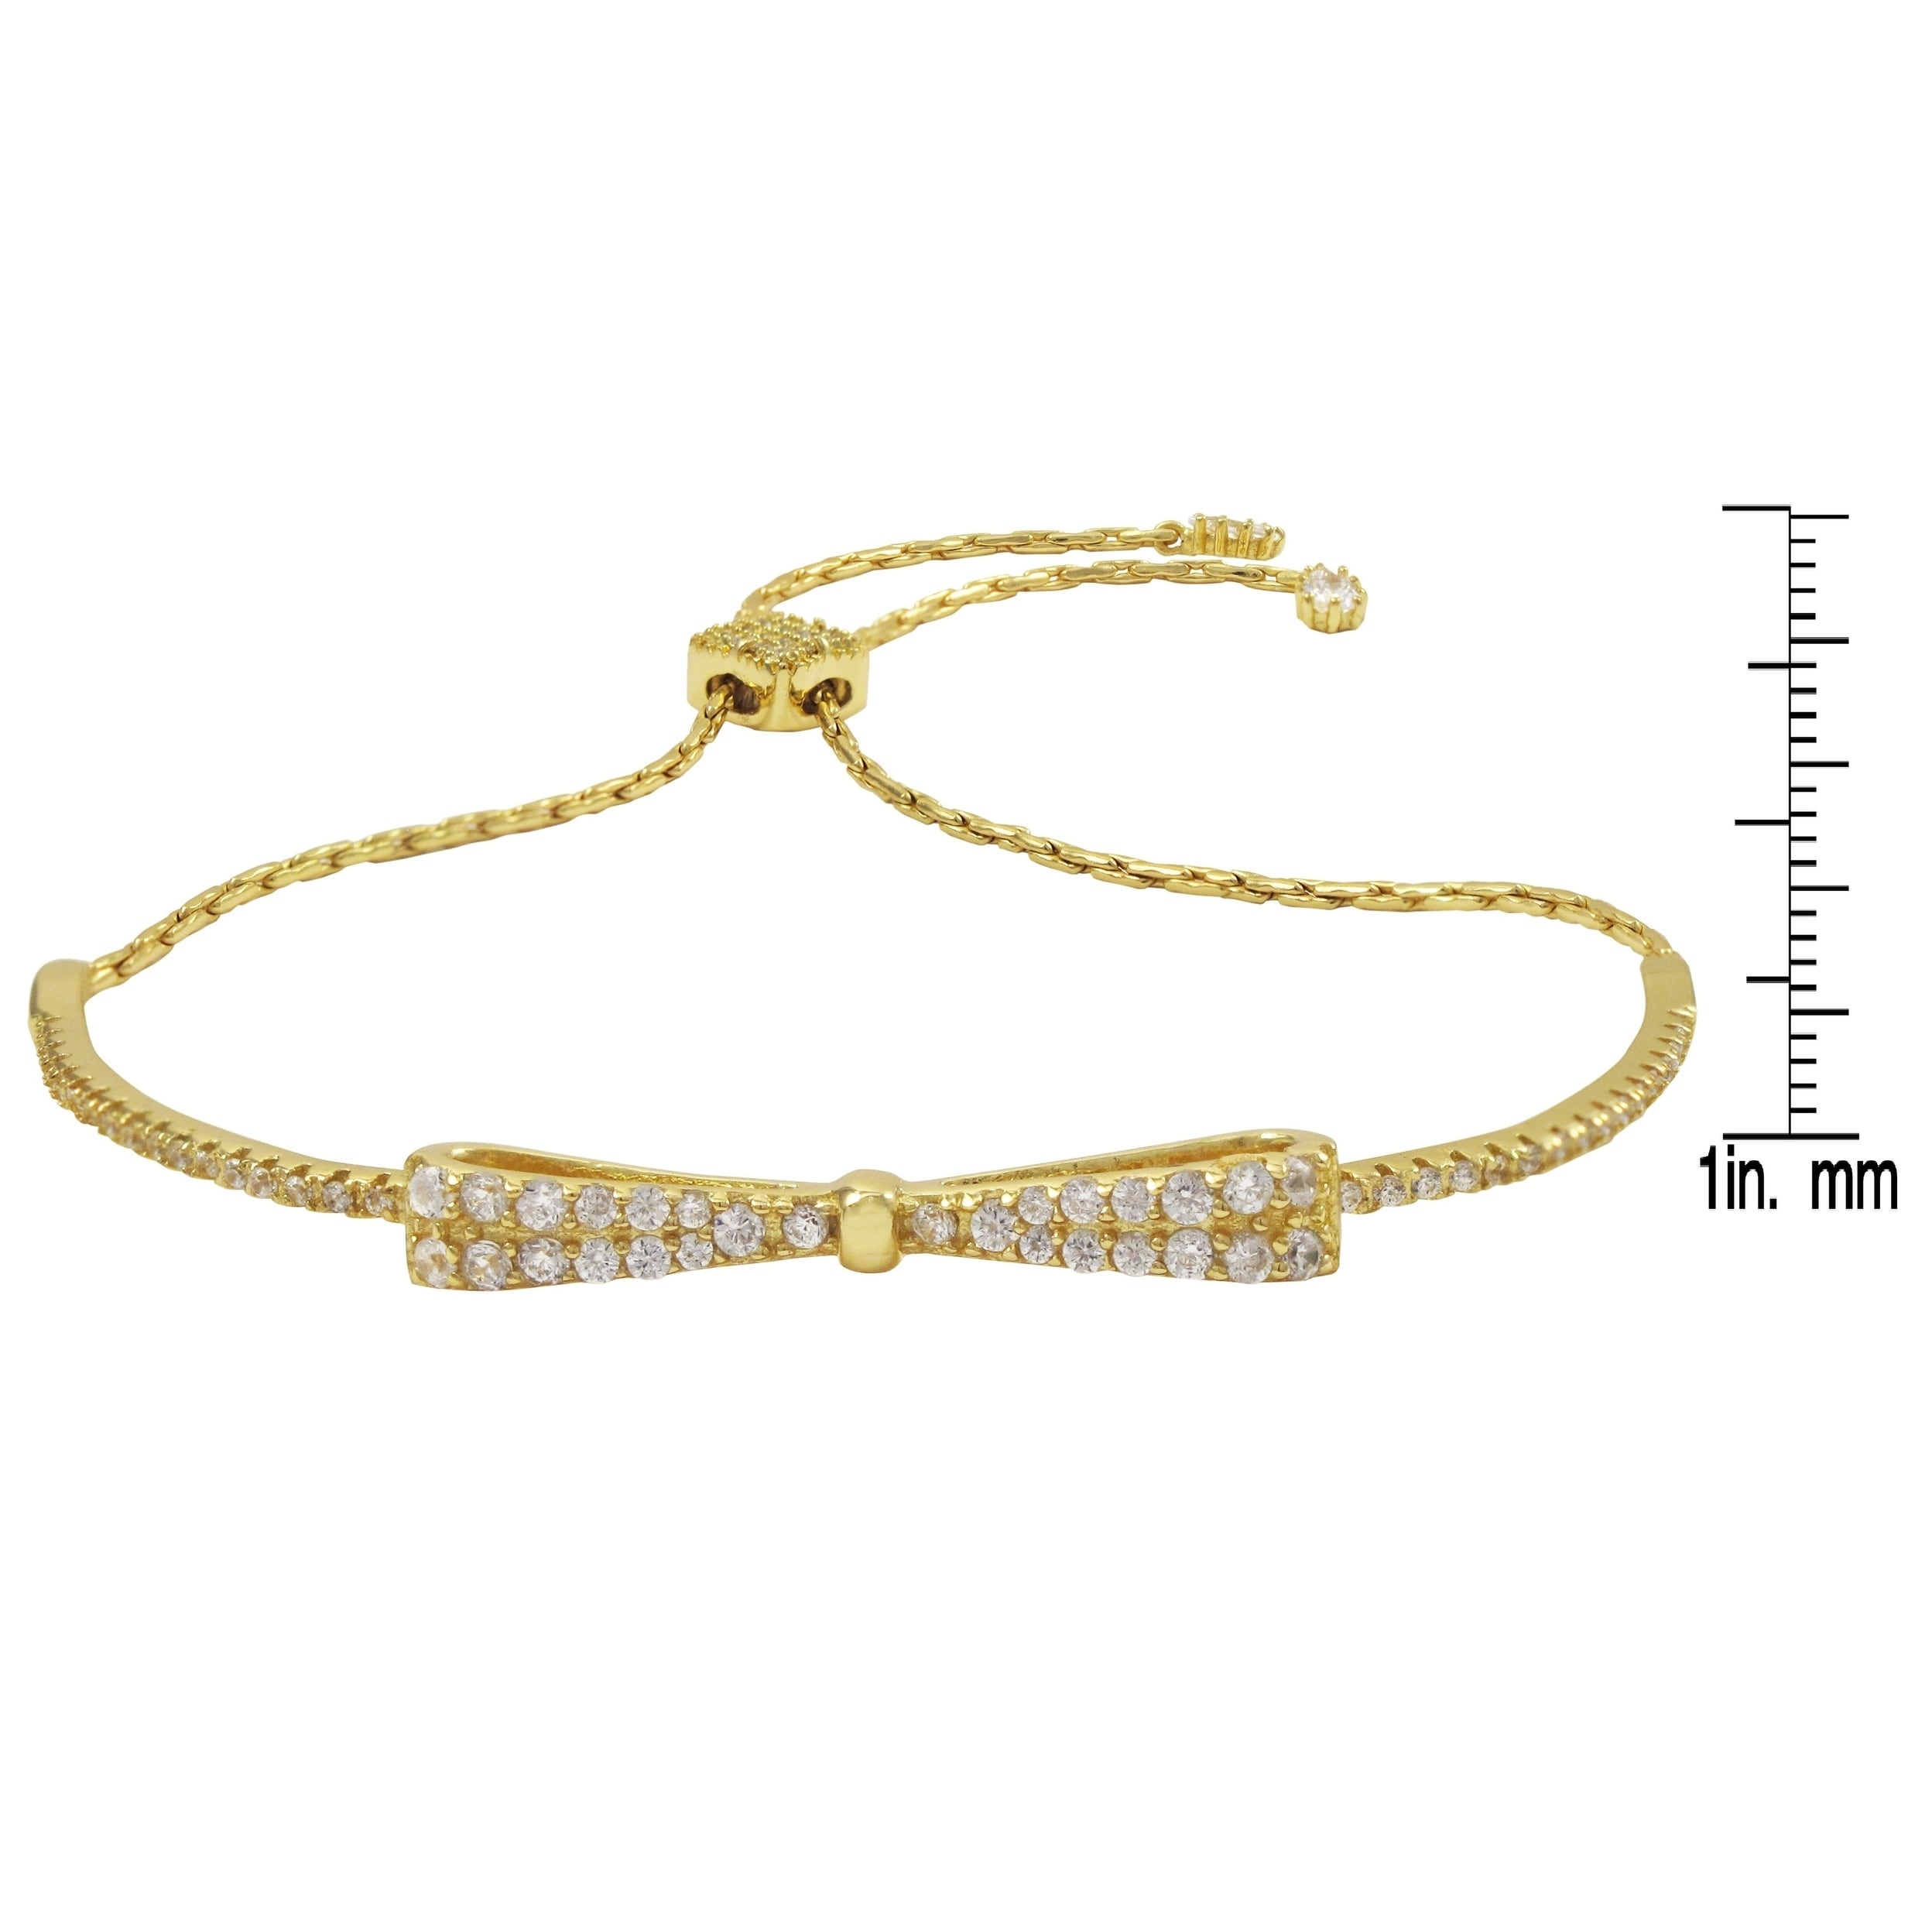 goldsmiths goldmark plated silver white and inspiration charm rose peaceful bracelets luxury uk ideas gold childrens